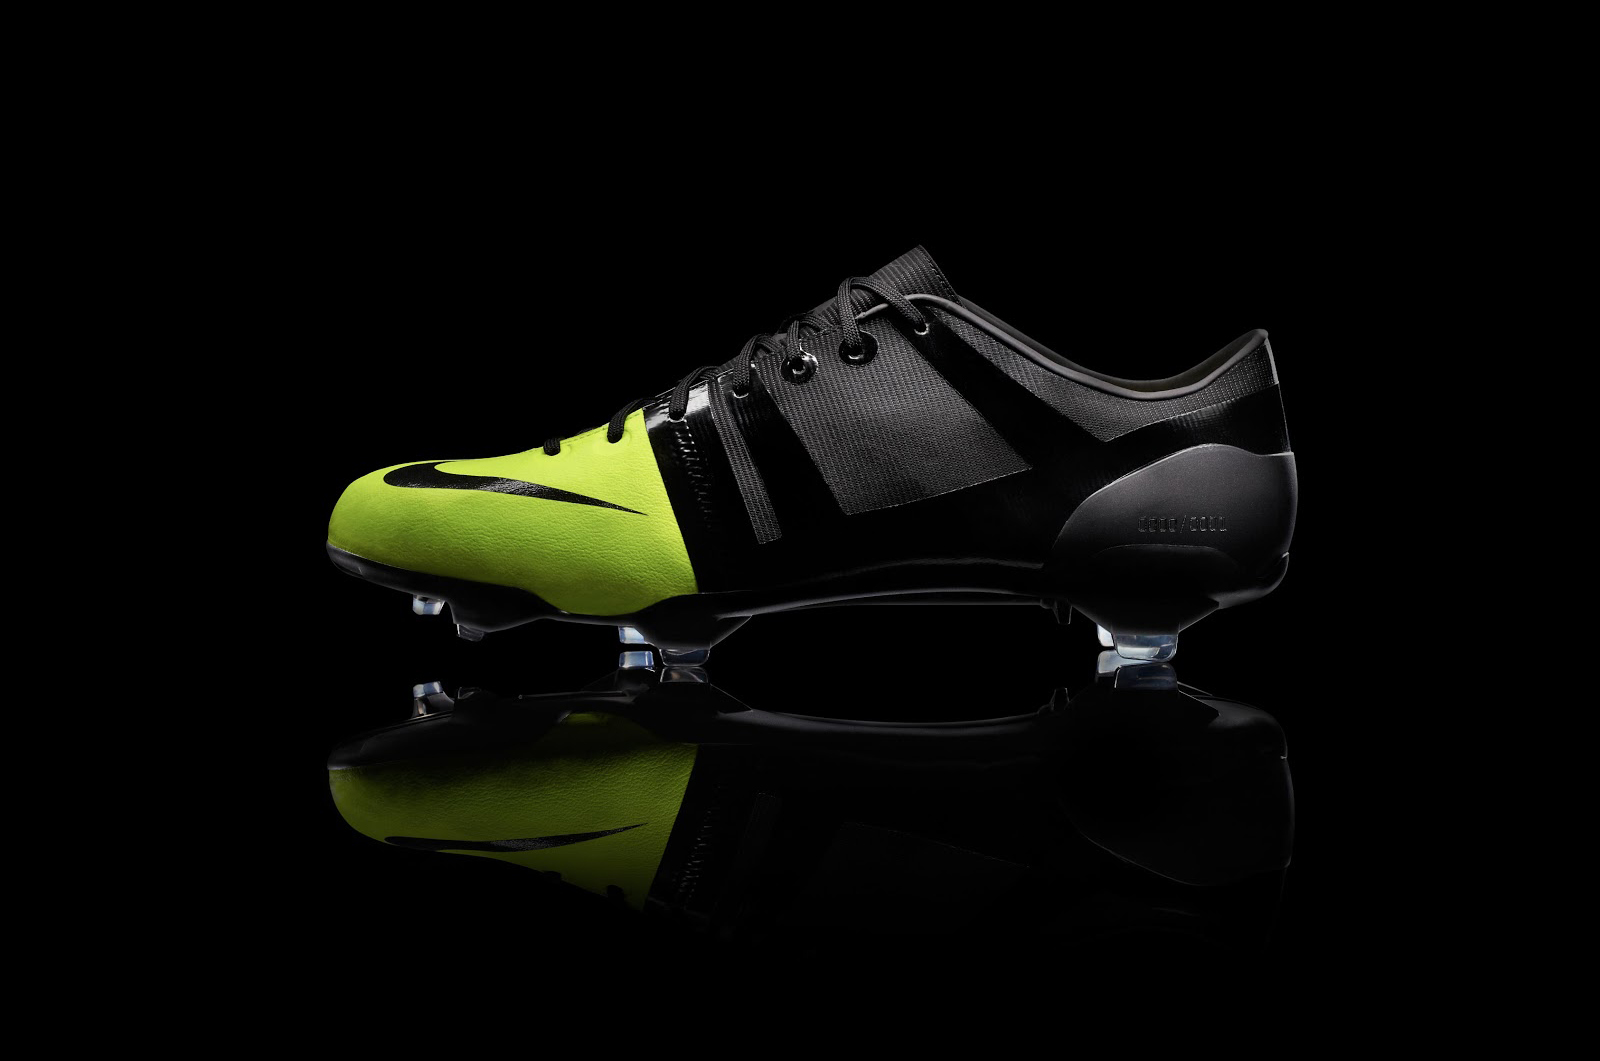 remake-boots-leaked-nike-gs-2012-football-boots-closer-look (4)